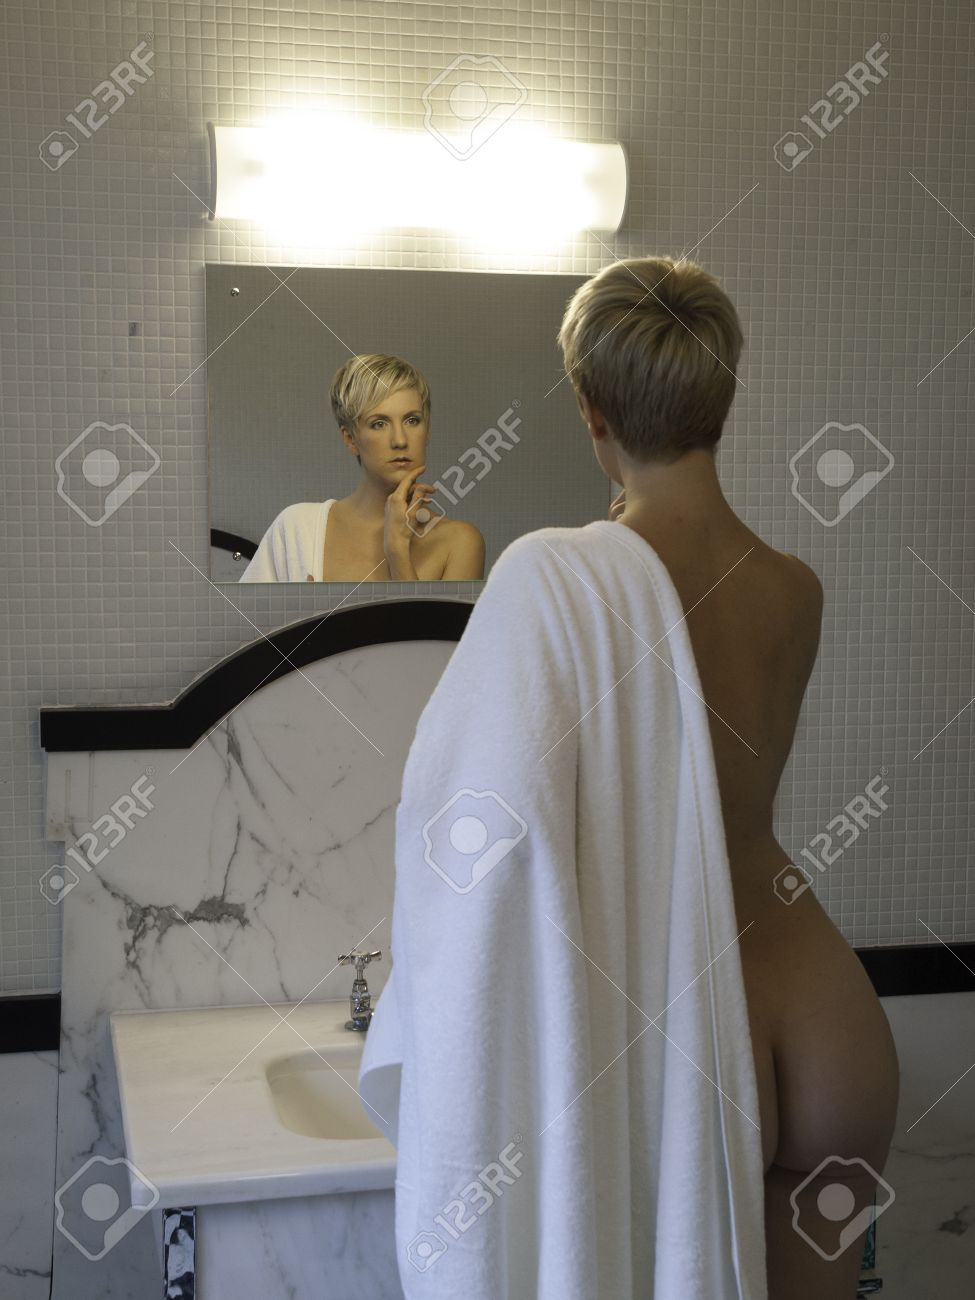 Naked woman in the bathroom looking at the mirrow Stock Photo - 18094165